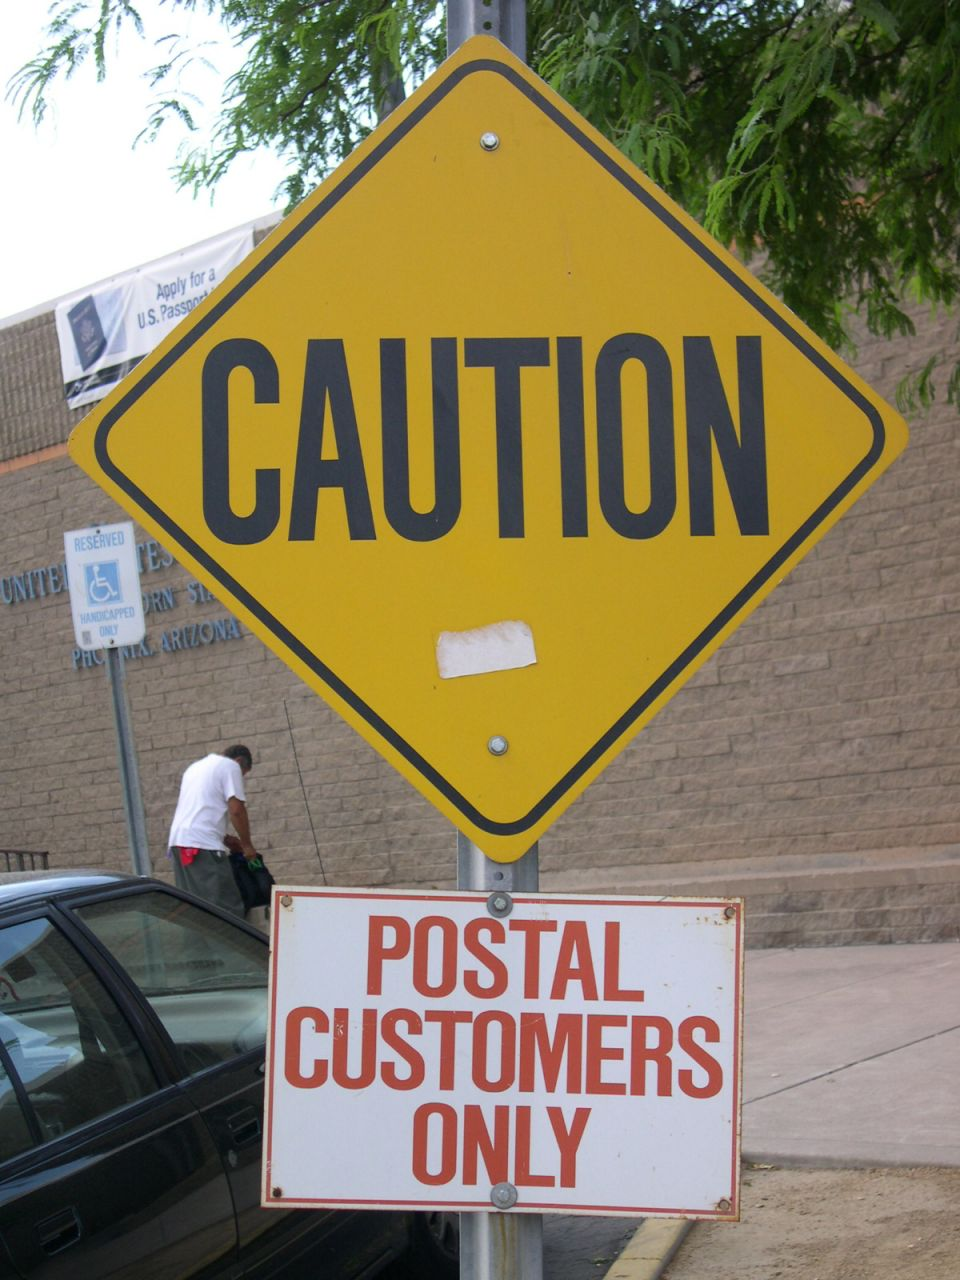 CAUTION: Postal Customers Only!